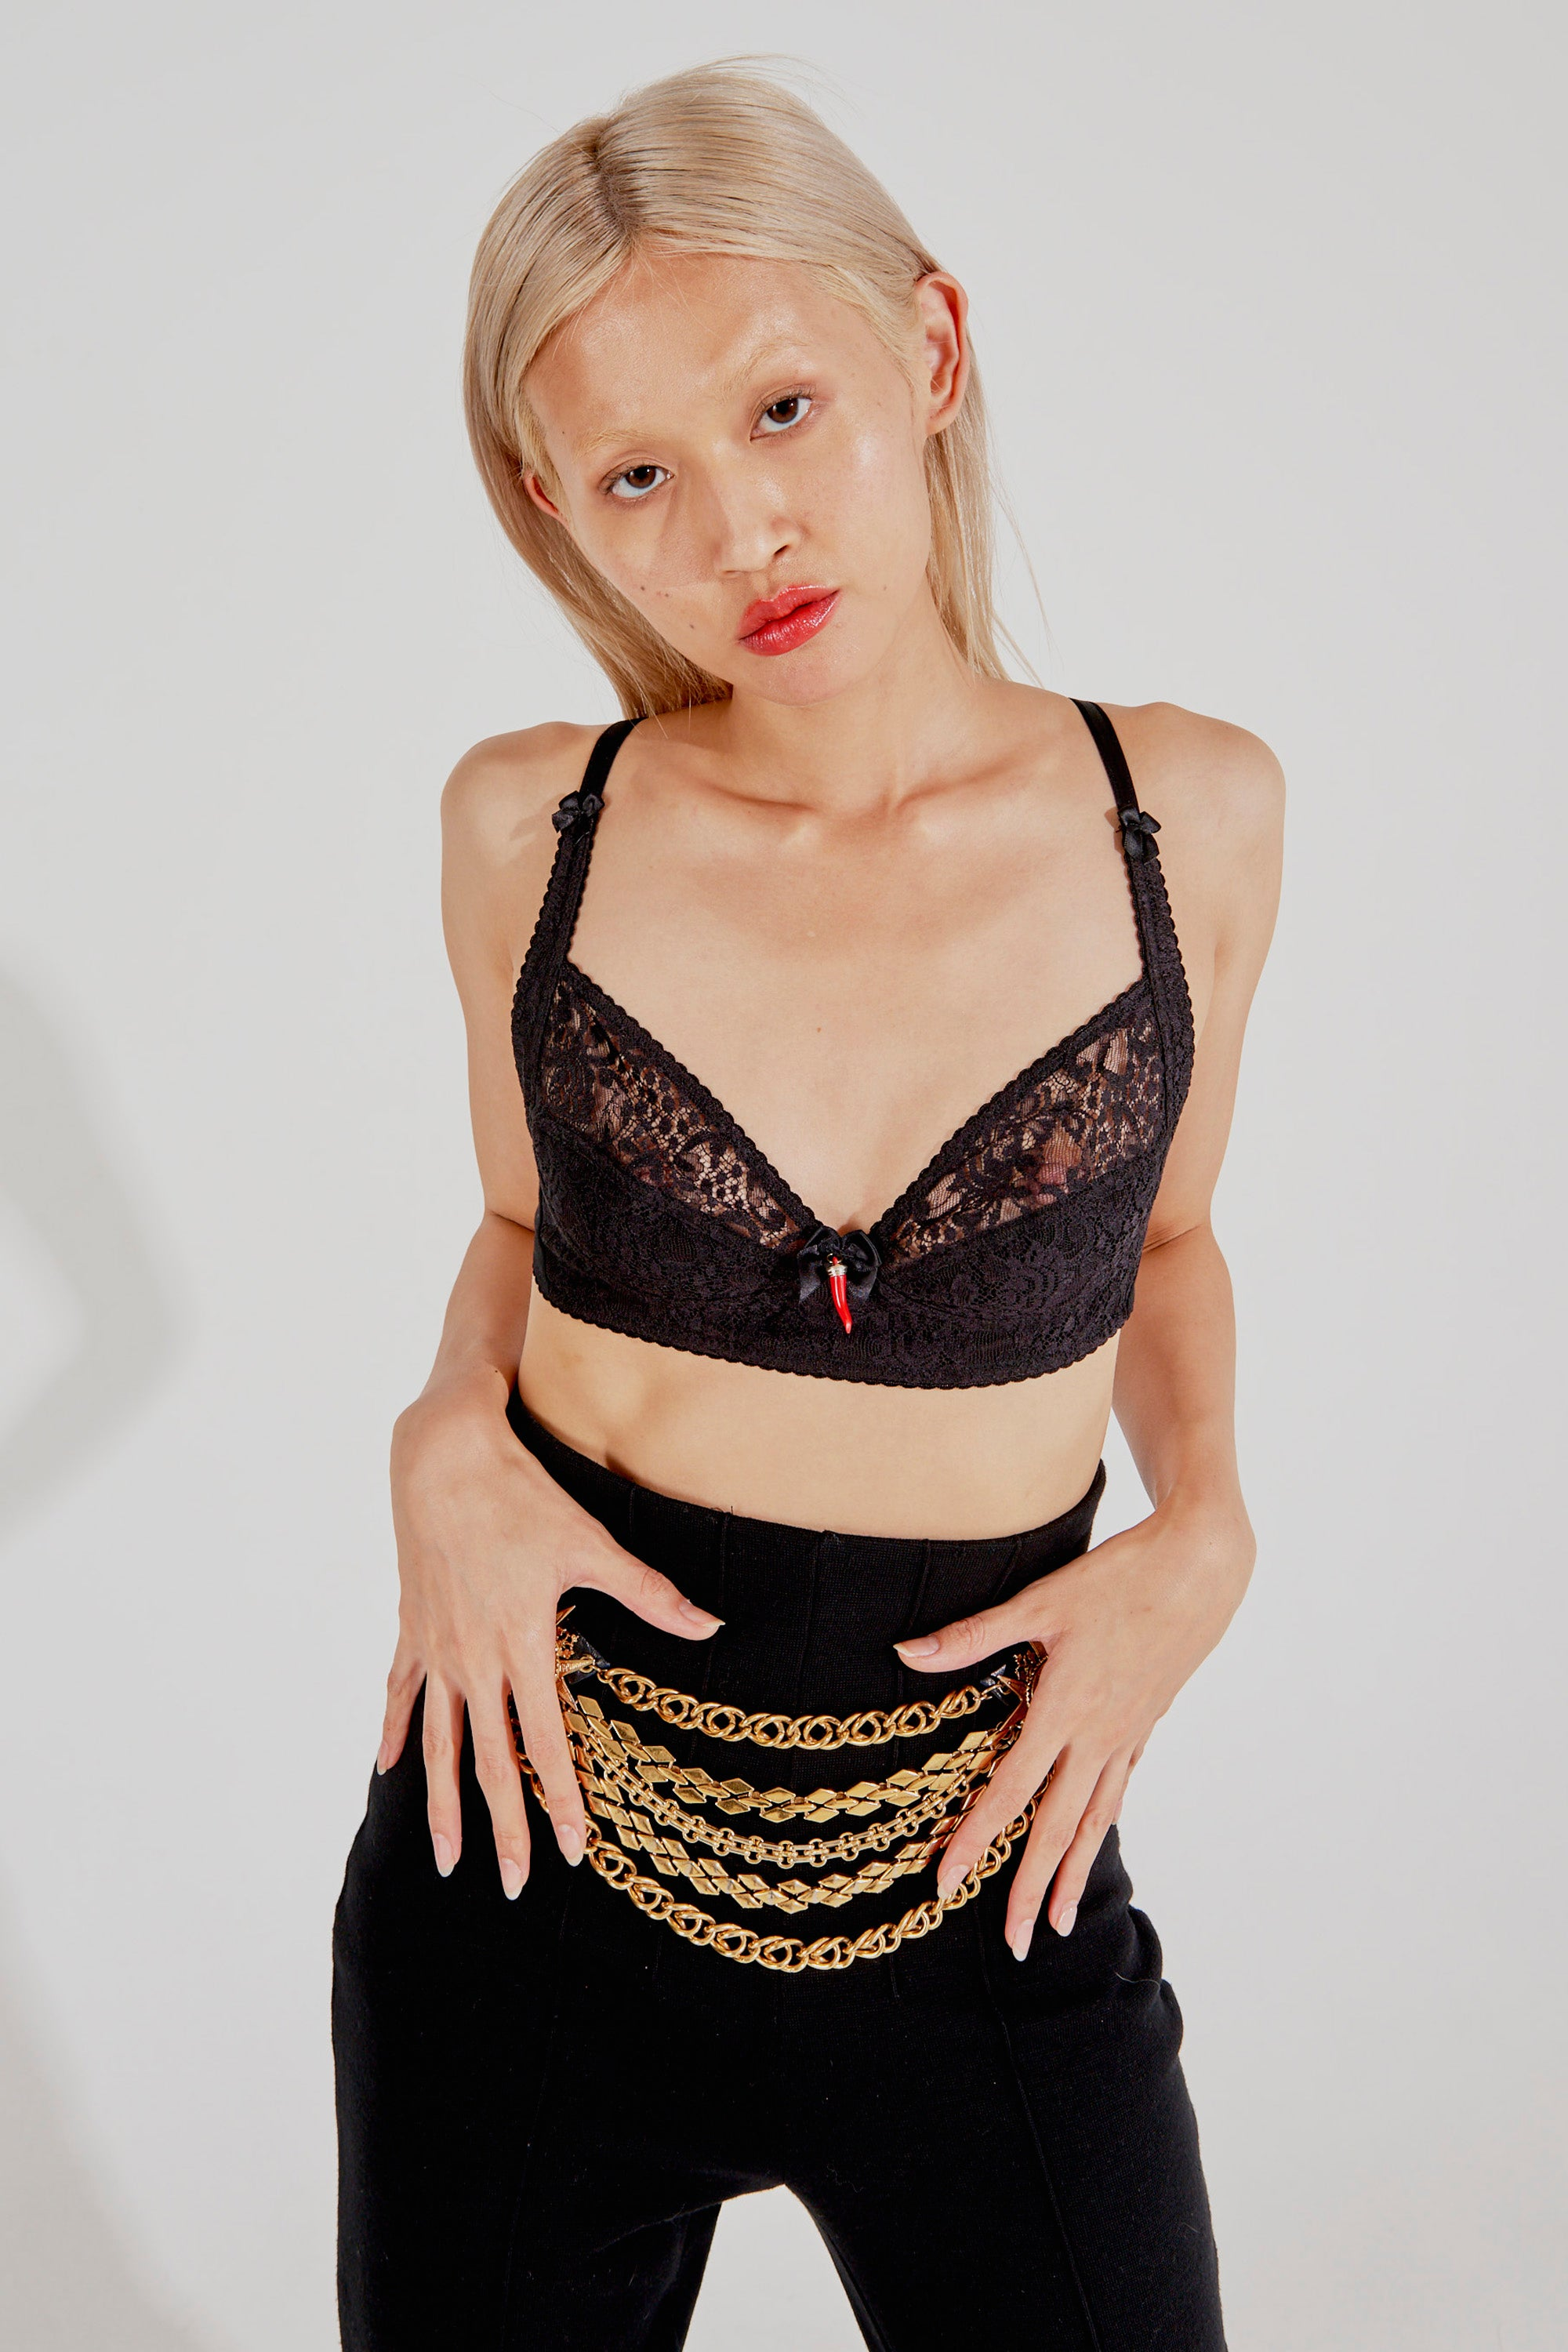 Dolce & Gabbana <br> 90's D&G black lace chilli pepper bra